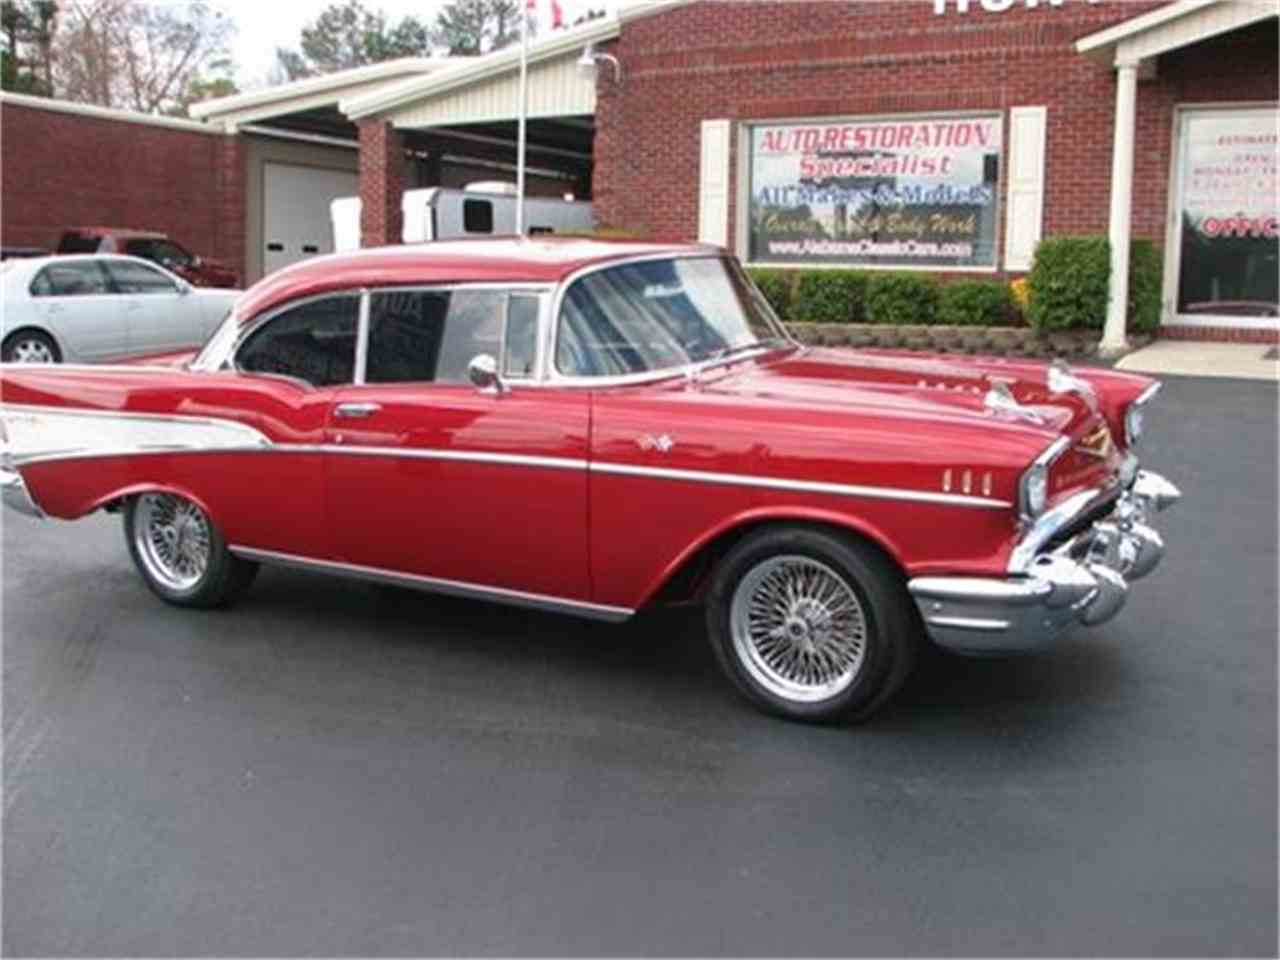 Large Picture of '57 Chevrolet Bel Air located in Florence Alabama Offered by Hunt's Auto Restoration - DSSA